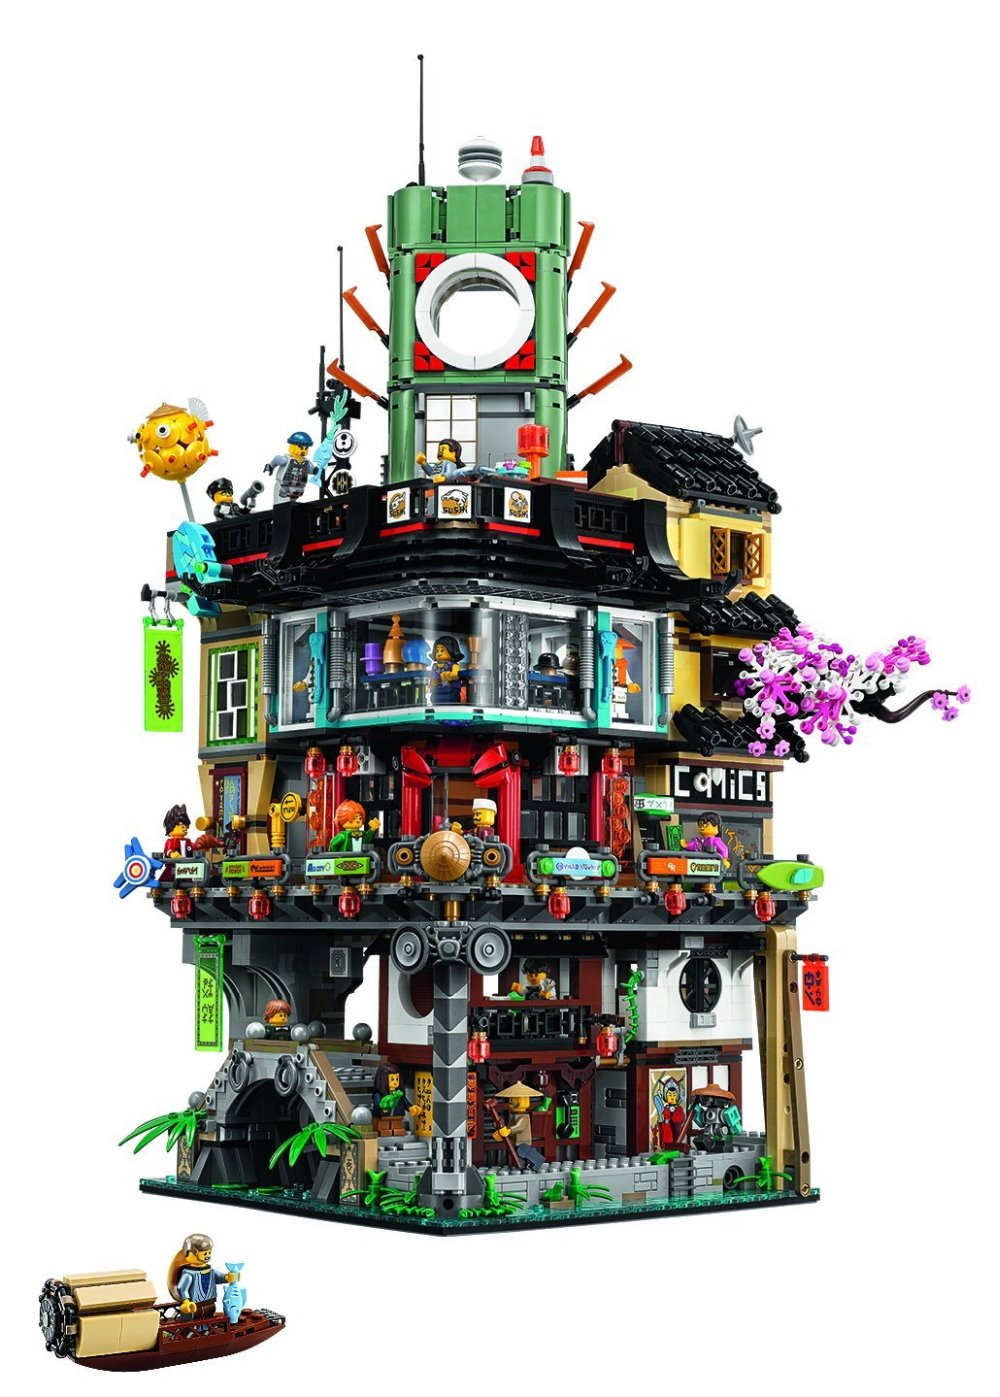 Lepin 06066 4953pcs Ninja Great Creator City Construction Model Modular Building Blocks Teenagers Toys Bricks Compatible 70620 lepin city town city square building blocks sets bricks kids model kids toys for children marvel compatible legoe